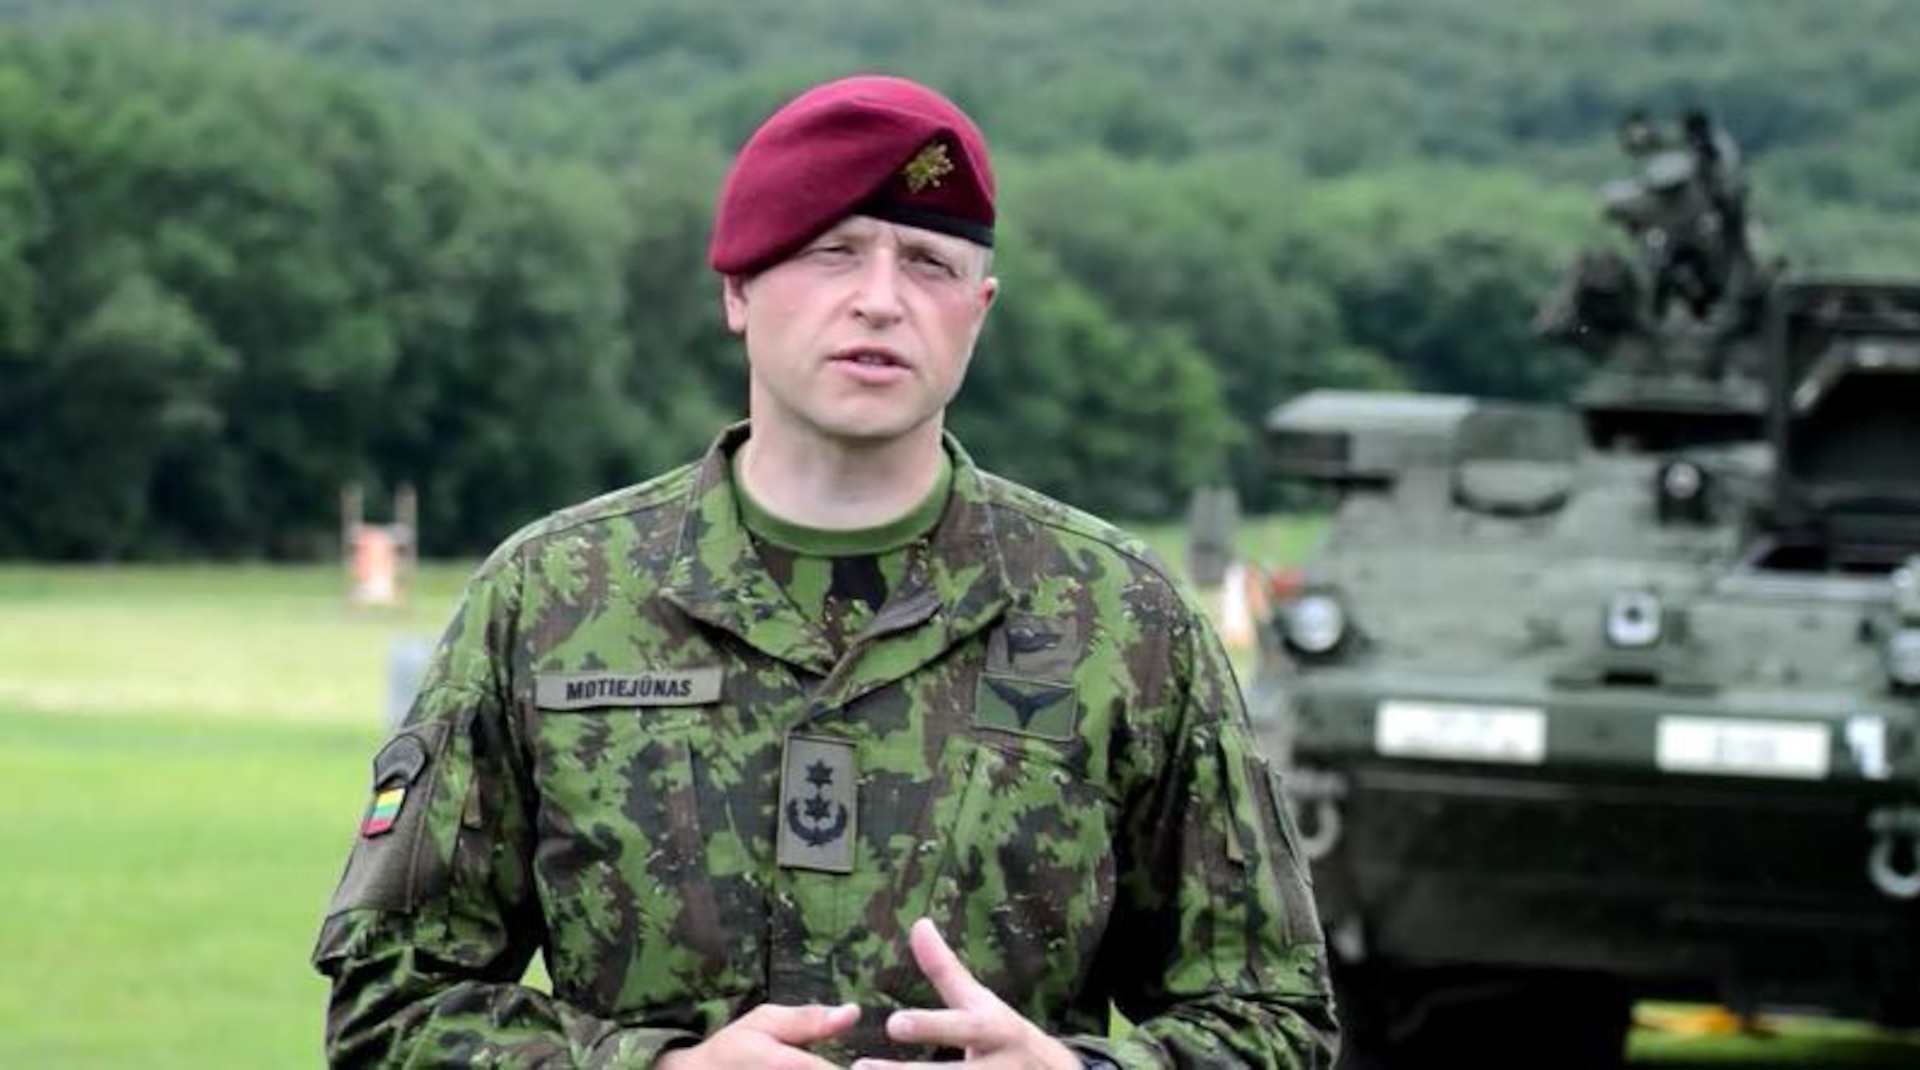 Lithuanian Lt. Col. Aurelijus Motiejunas speaks about his experience training alongside Pennsylvania National Guard soldiers from the 28th Infantry Division at Fort Indiantown Gap.